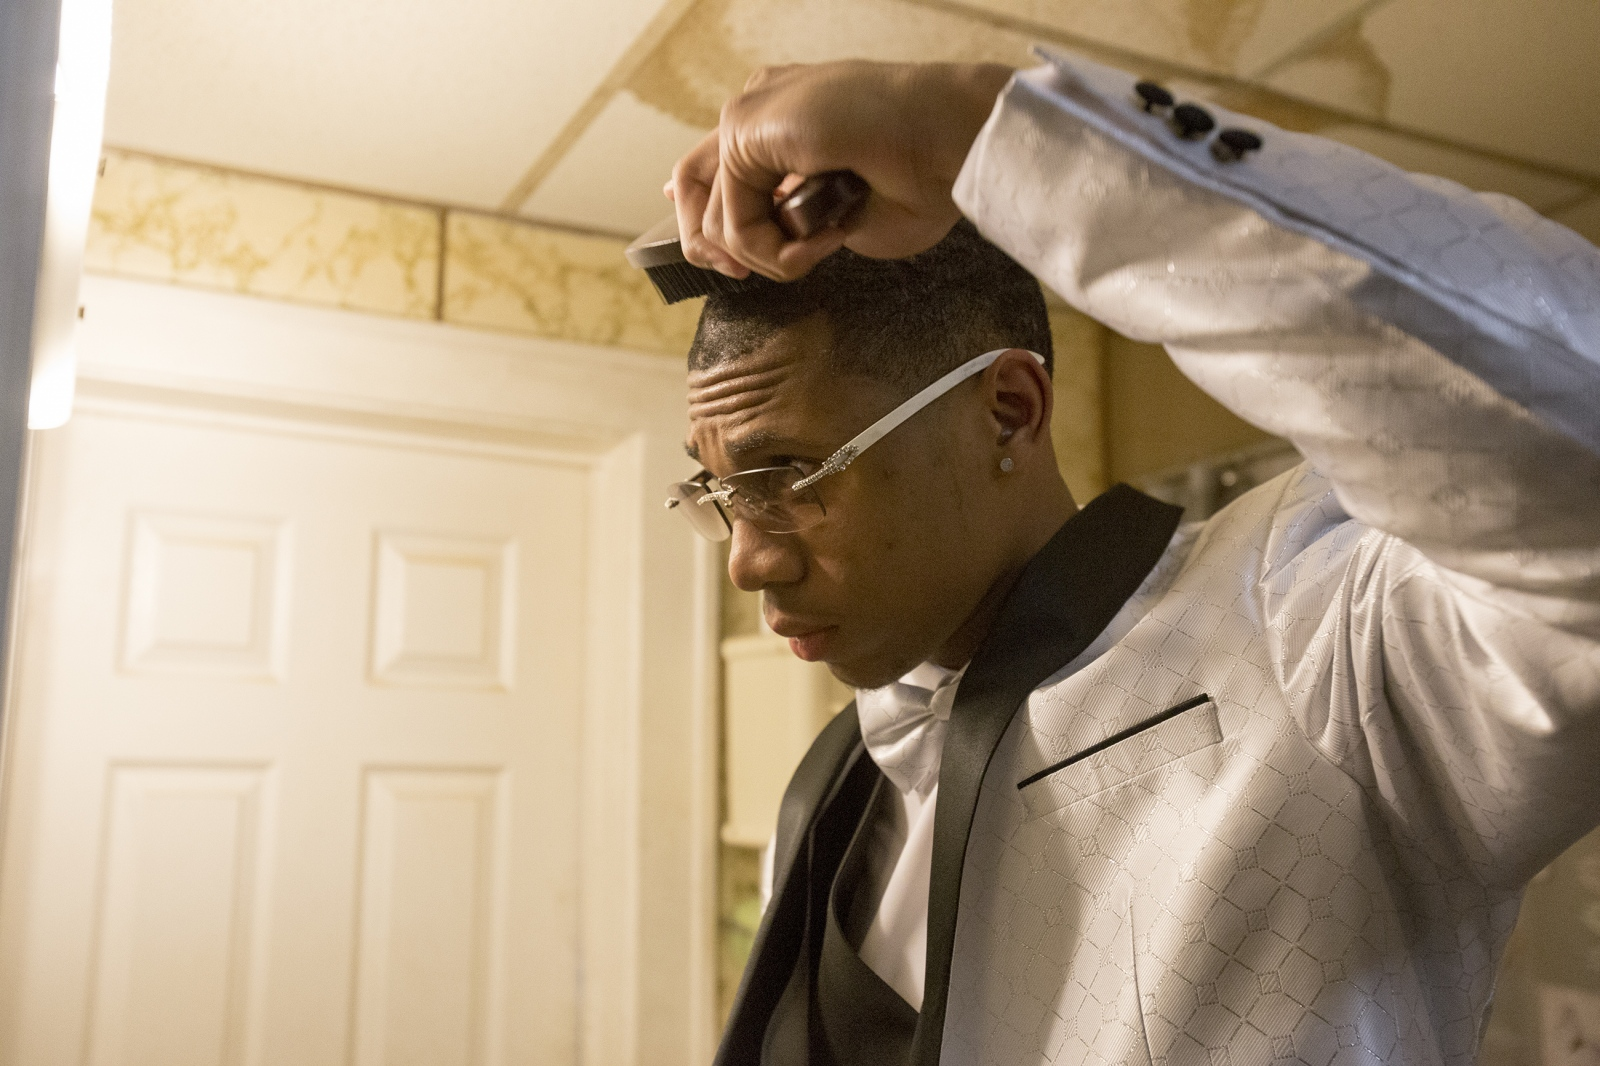 Dressed and nearly ready, Michael brushes his hair in his bathroom before he leaves for his senior prom in Detroit.